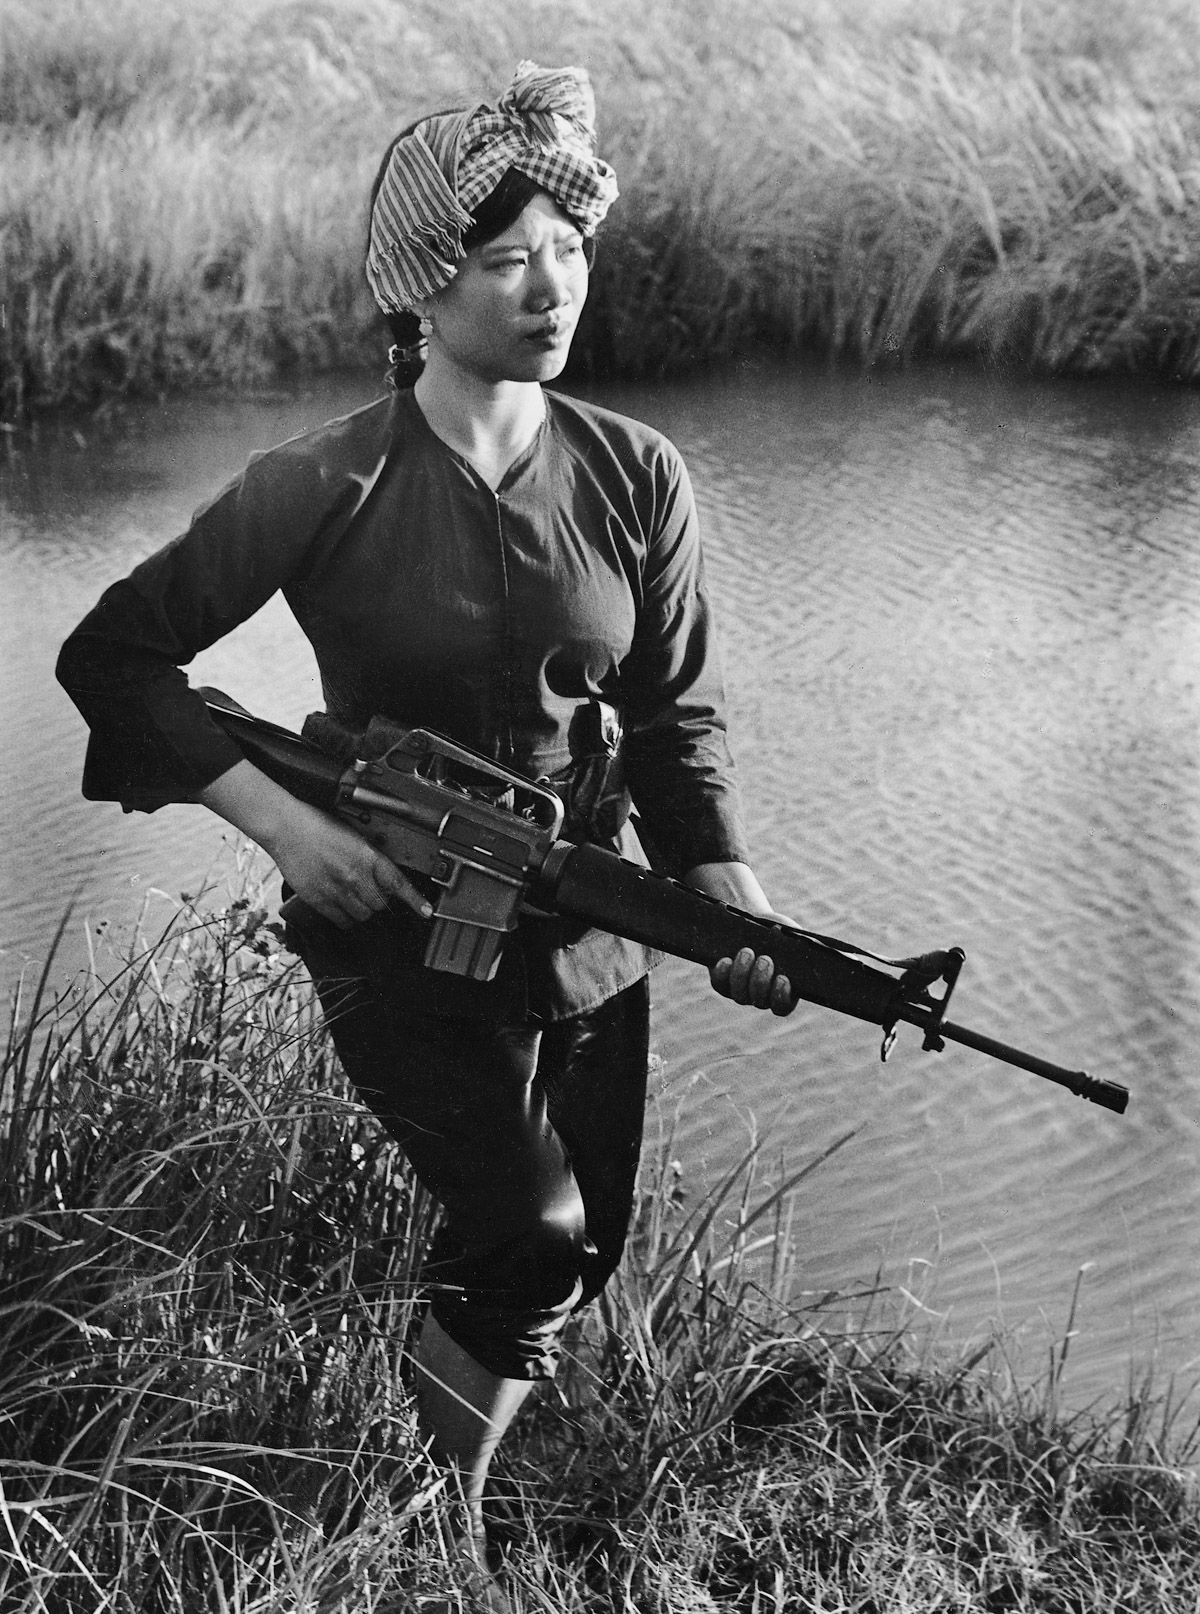 Astonishing, rare images of the Vietnam War from the winning side ...